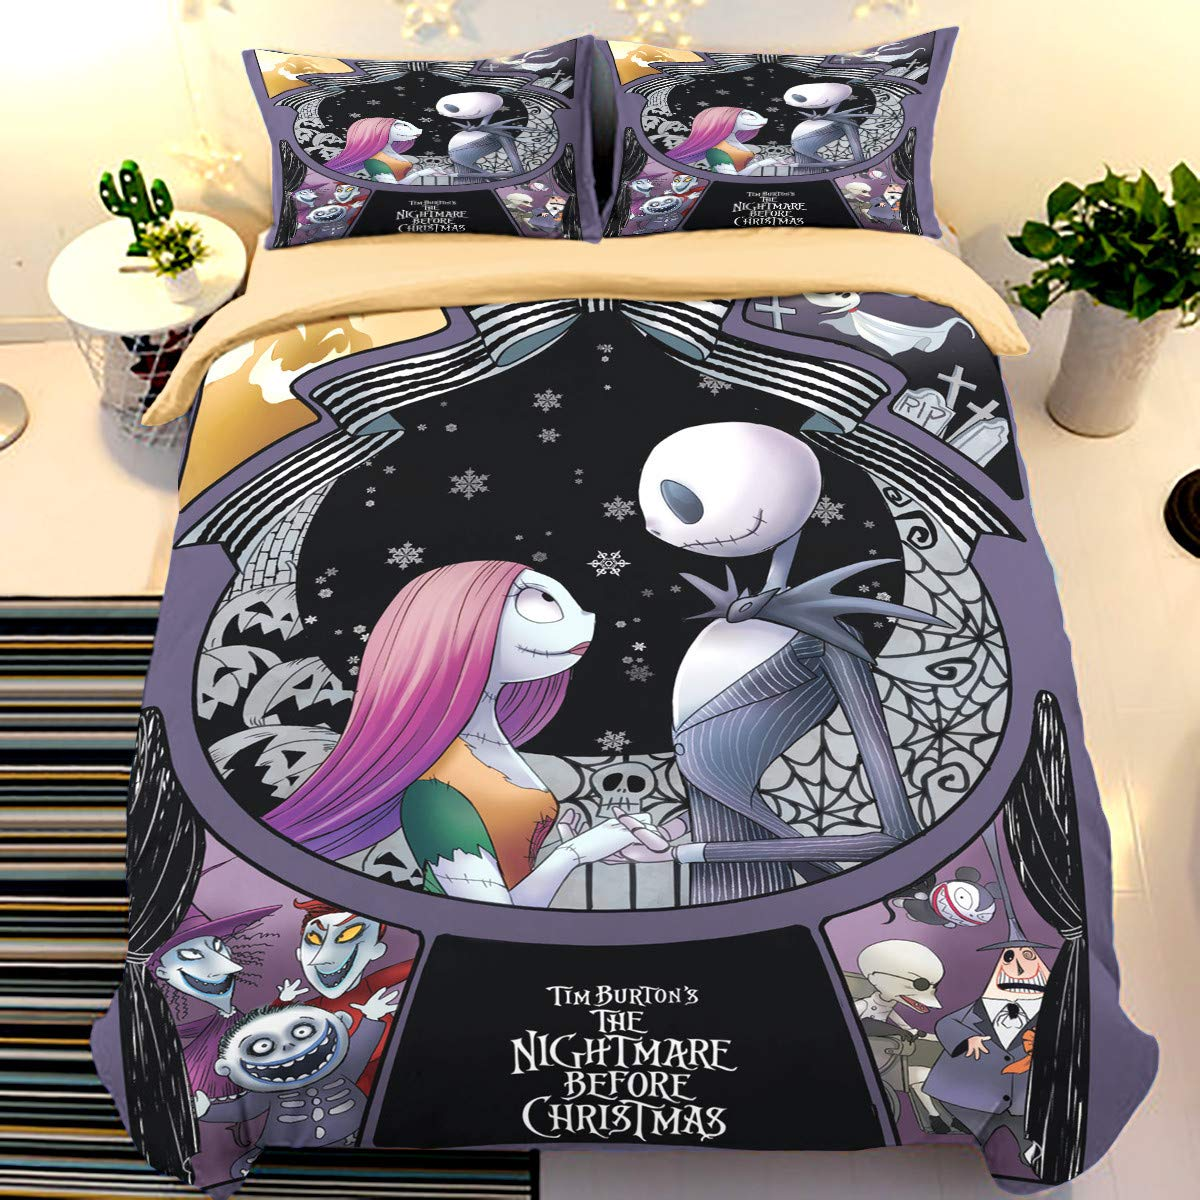 Guidear Nightmare Before Christmas Duvet Cover with 2 Pillowcases Cartoon Skull Bedding Set